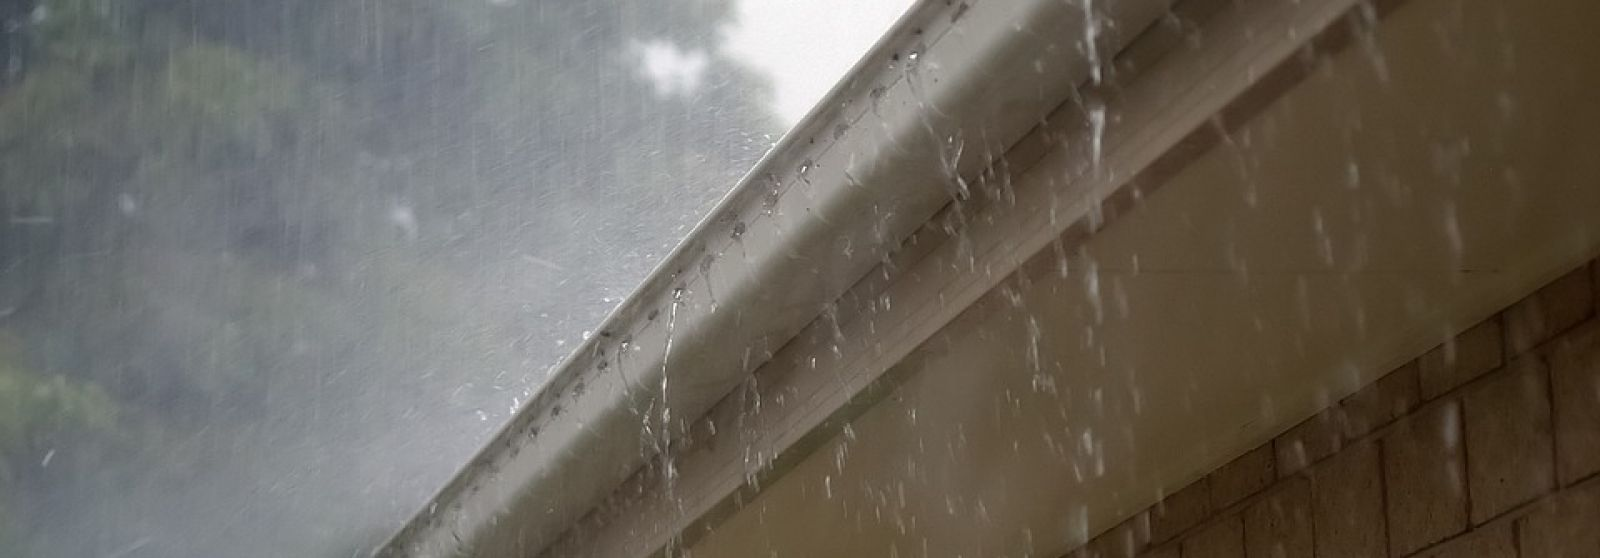 How to Prevent Water Damage to your Home's Exterior